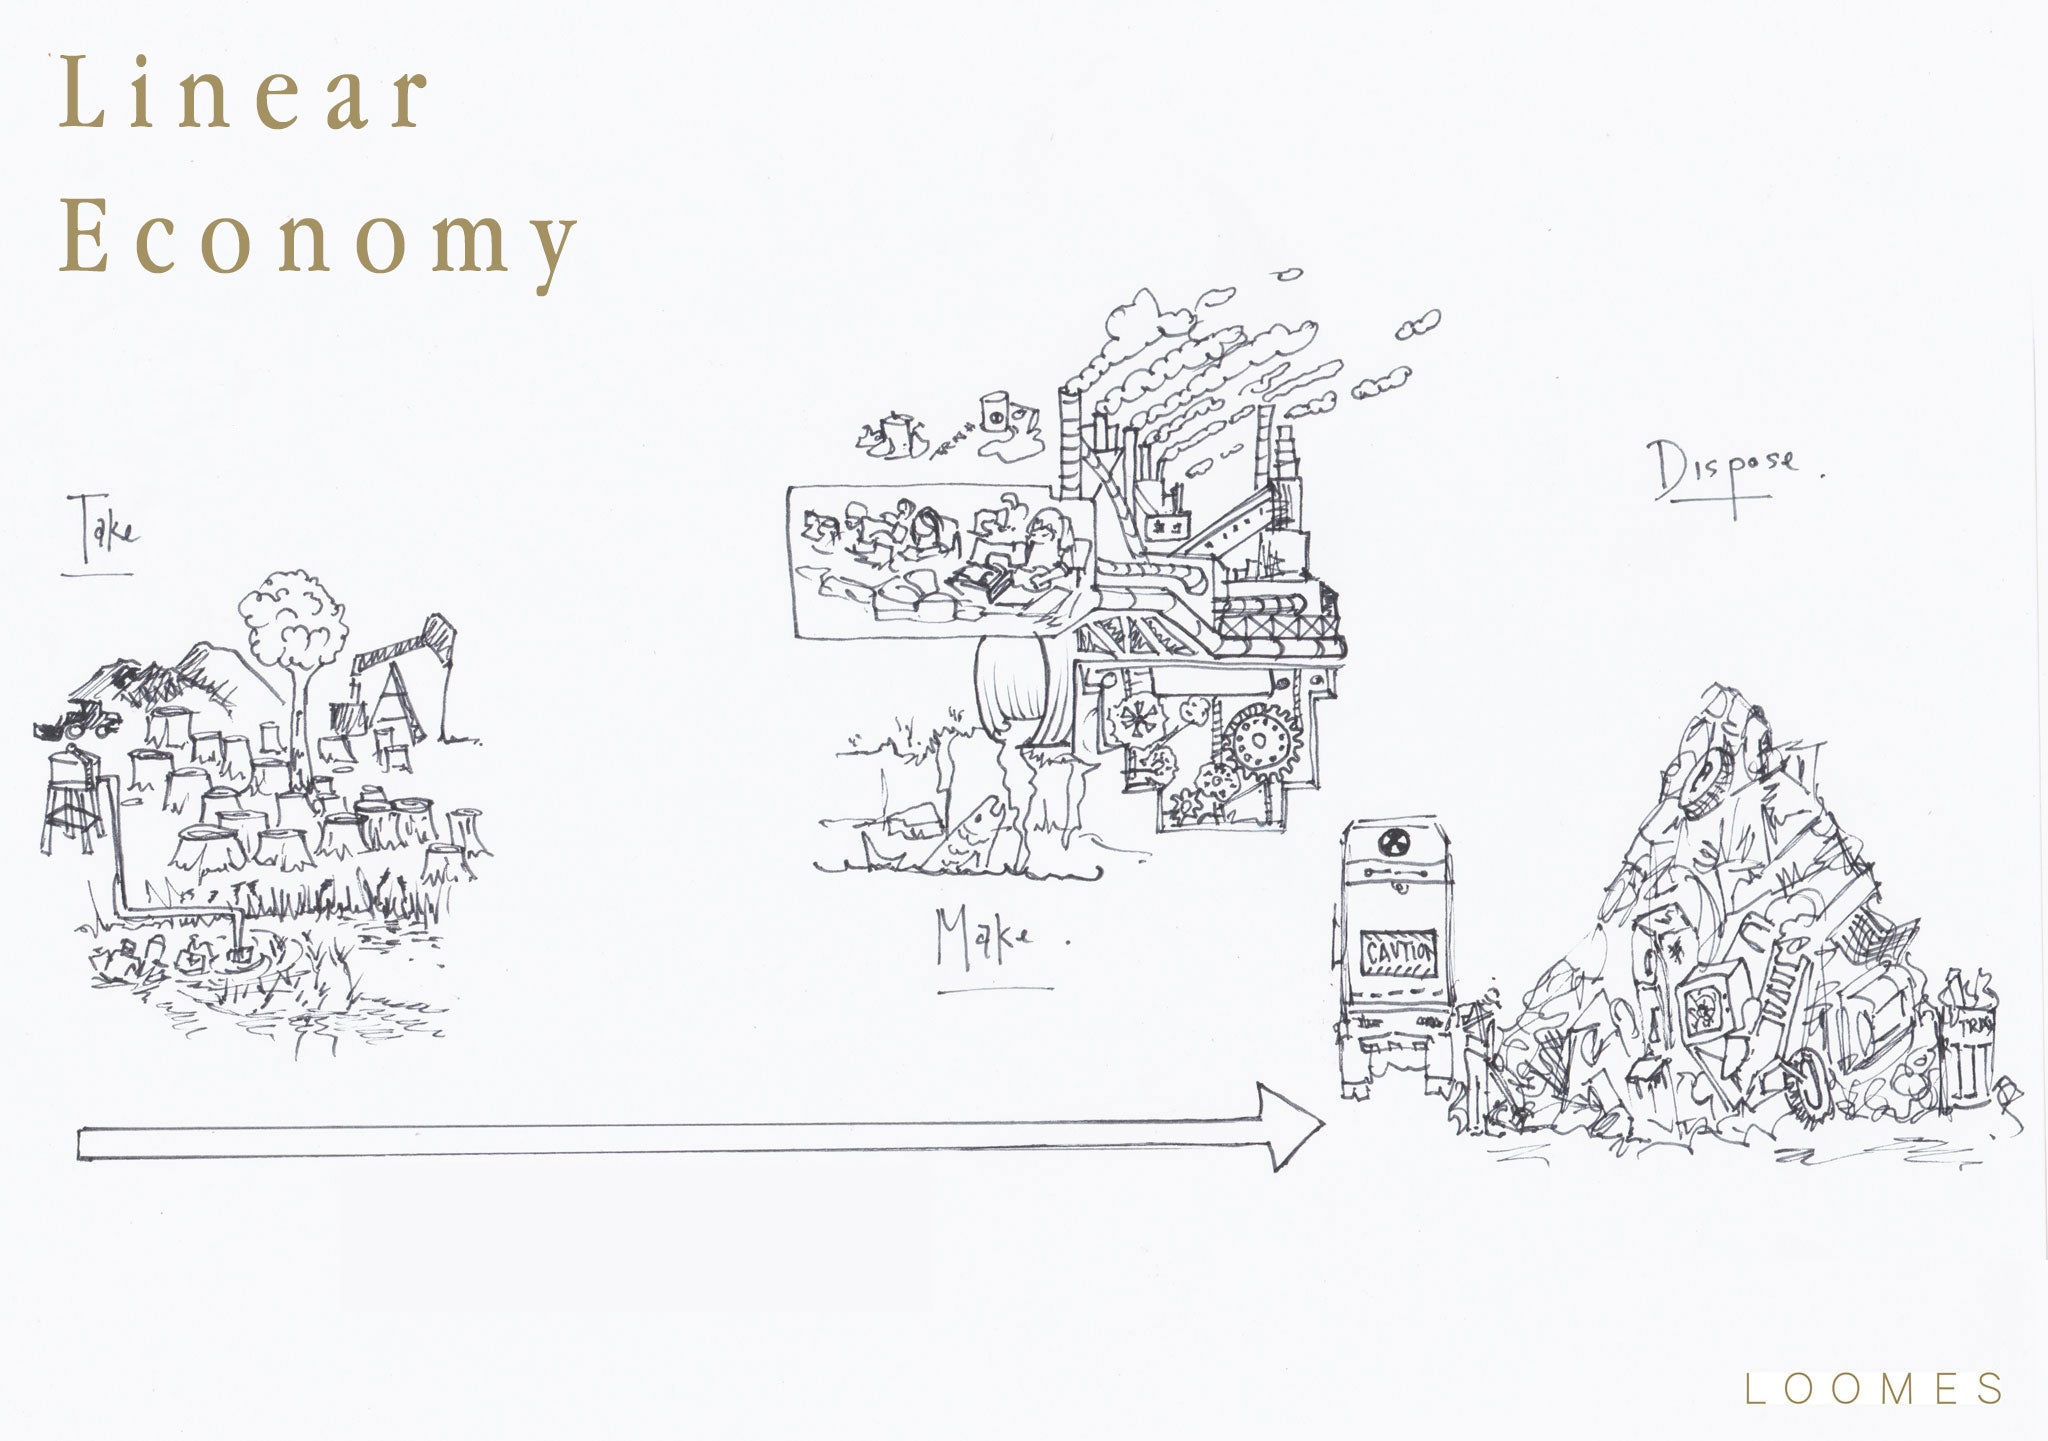 Linear Economy Fashion Industry